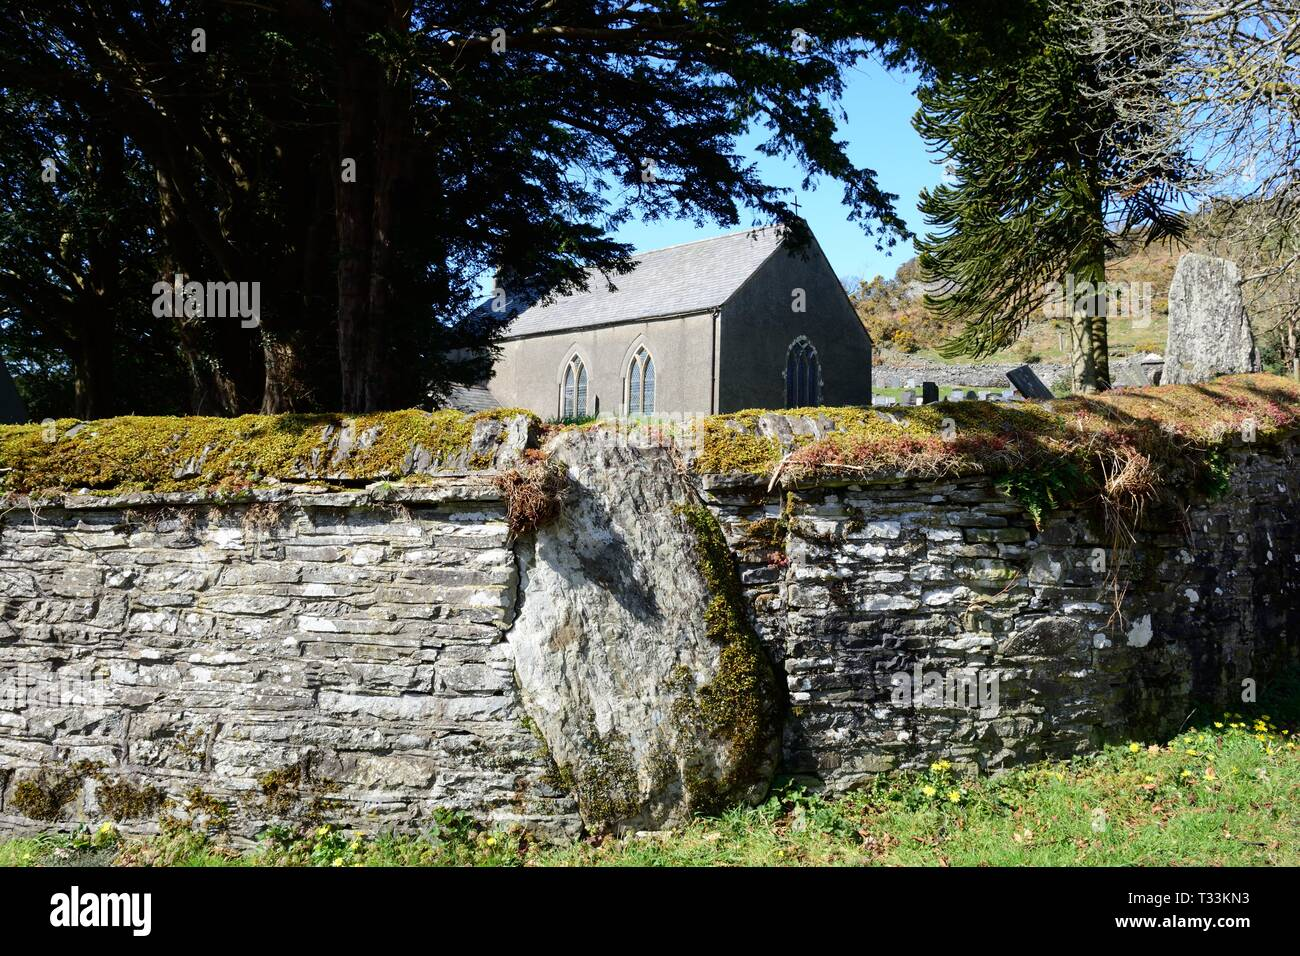 St Johns Church Ysbyty Cynfyn with a circular churchyard with a Bronze Age stone circle built into the surrounding wall  Cardiganshire Wales Stock Photo